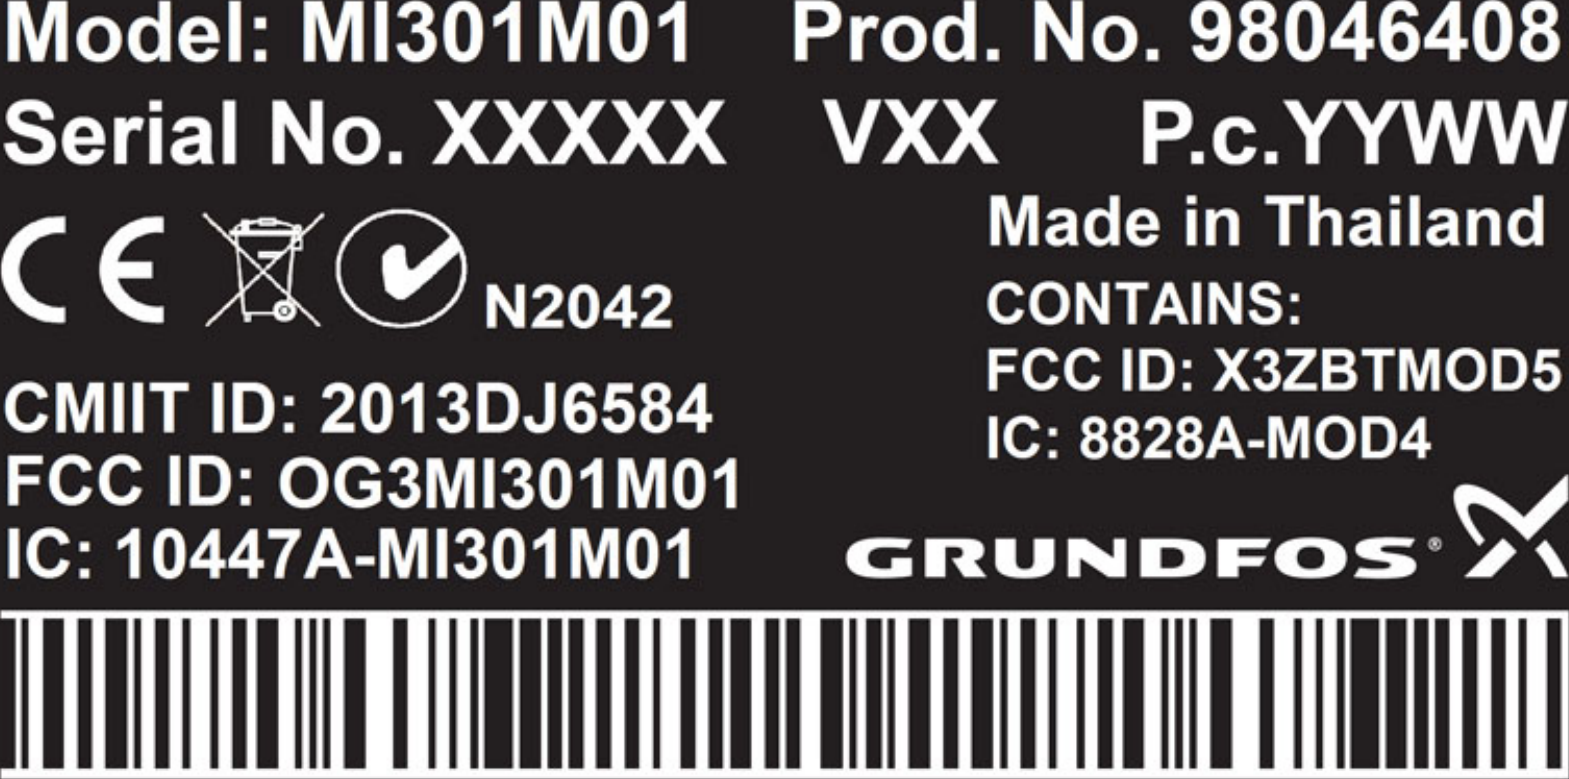 grundfos go remote instructions